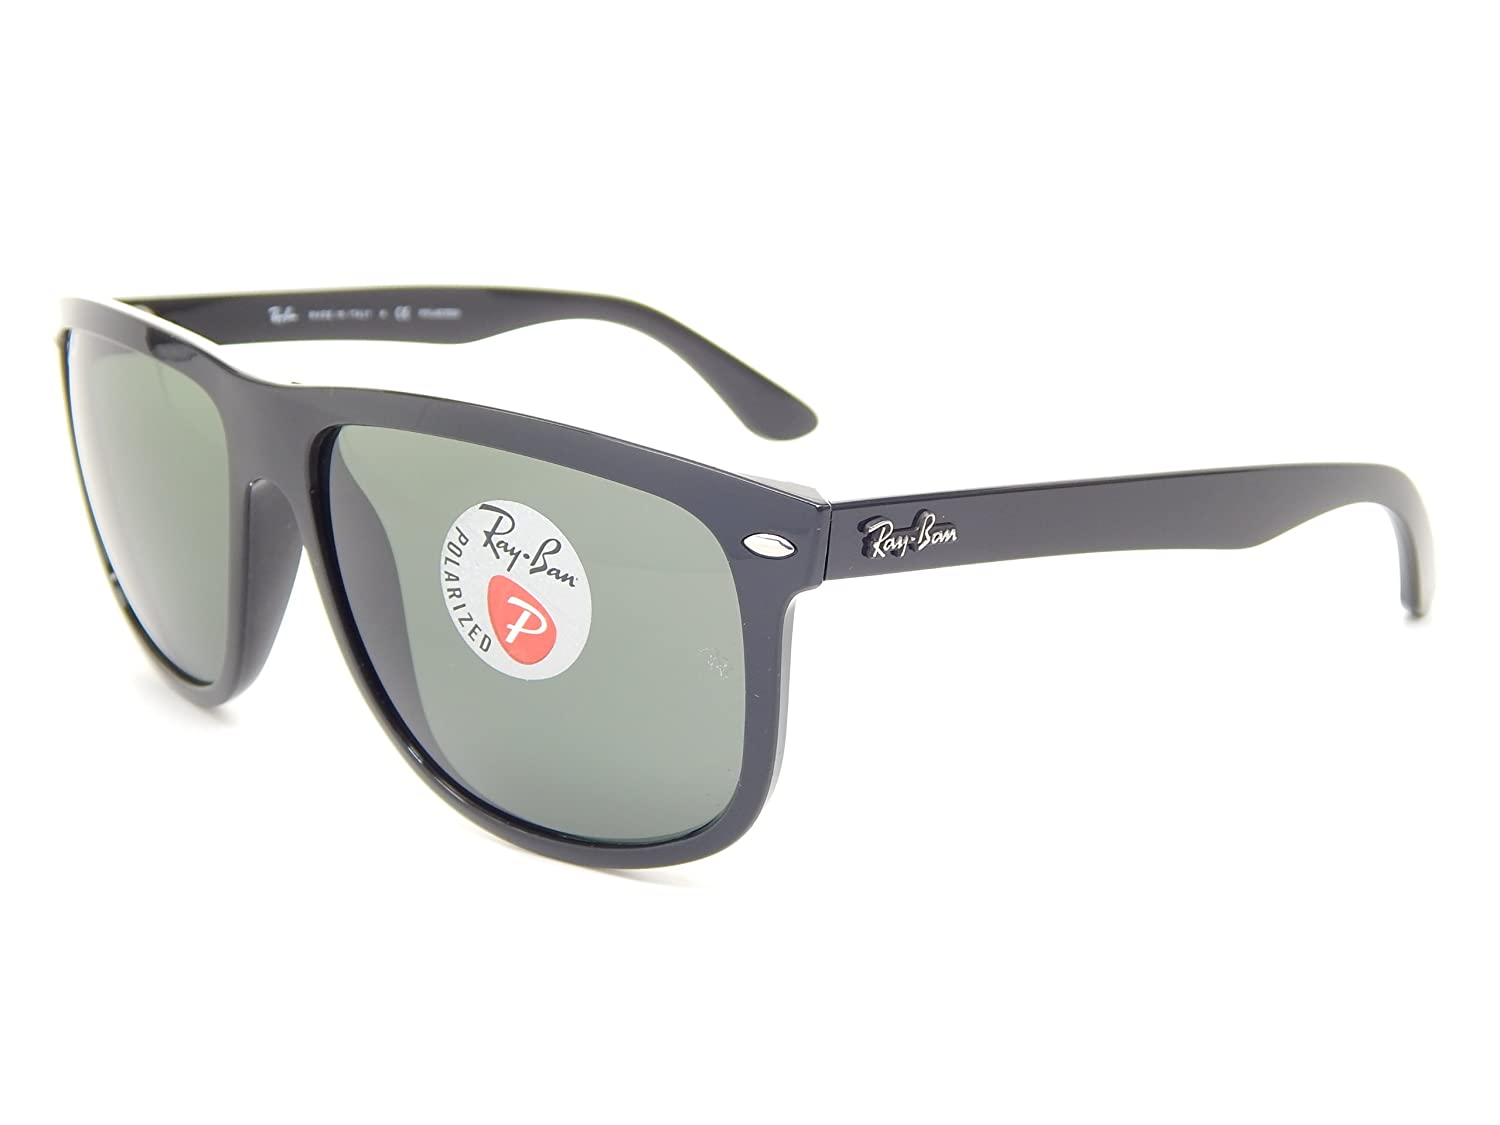 655bf812c7a Amazon.com  Ray Ban RB4147 601 58 Black Green Classic G-15 60mm Polarized  Sunglasses  Clothing